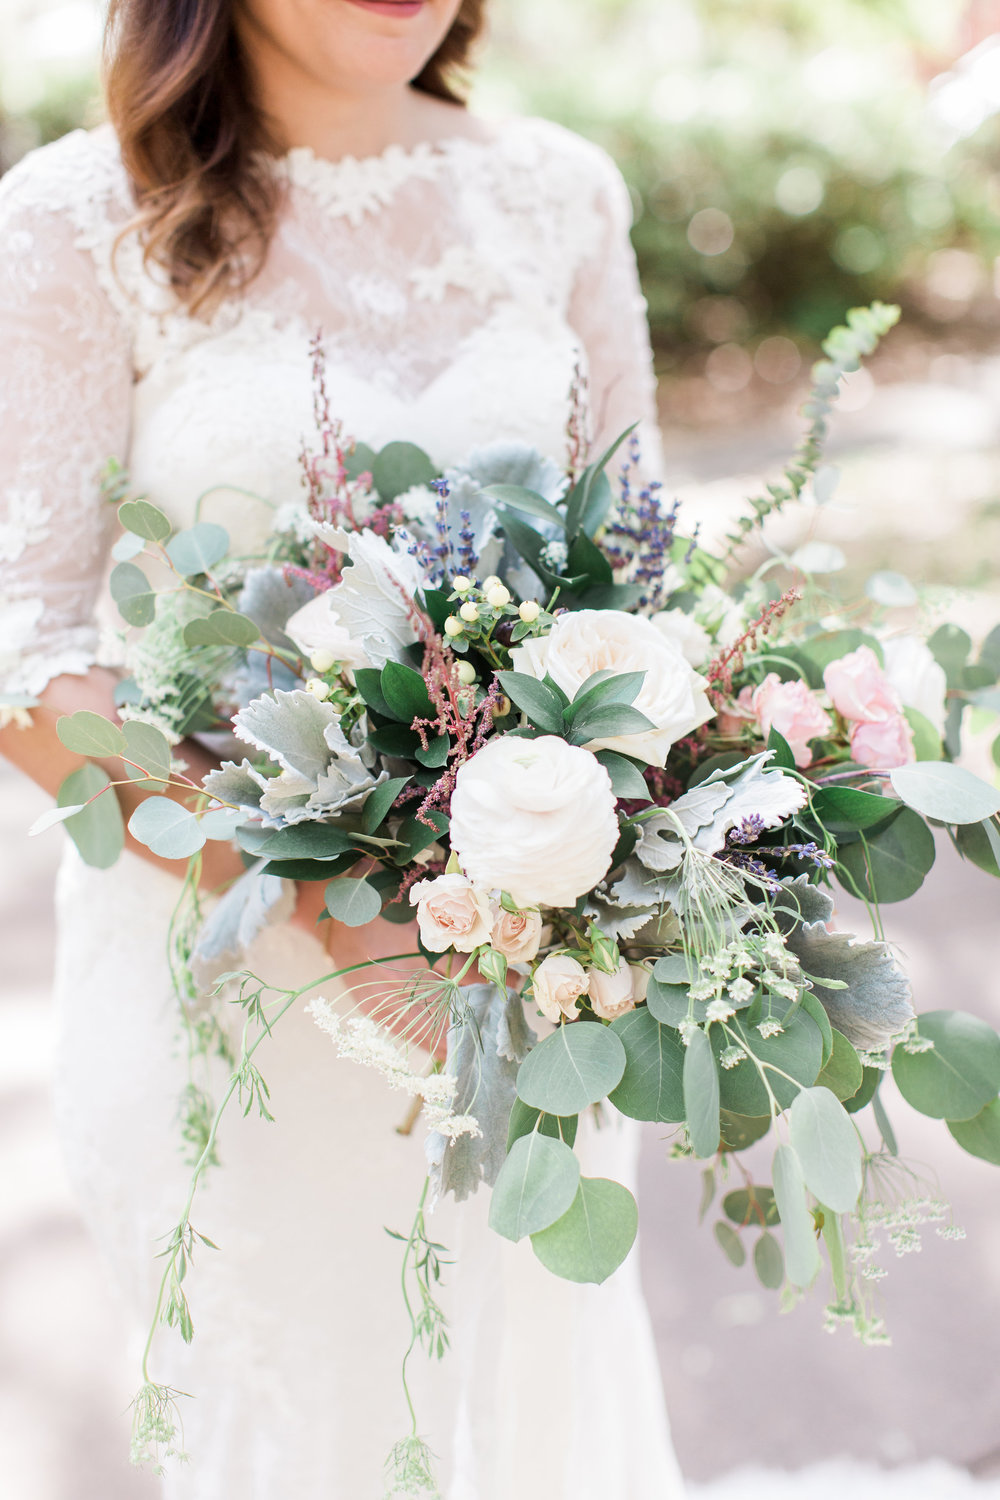 apt-b-photography-ivory-and-beau-bridal-boutique-savannah-florist-savannah-bridal-boutique-savannah-elopment-forsyth-fountain-wedding-intimate-wedding-southern-elopement-savannah-weddings-30.jpg